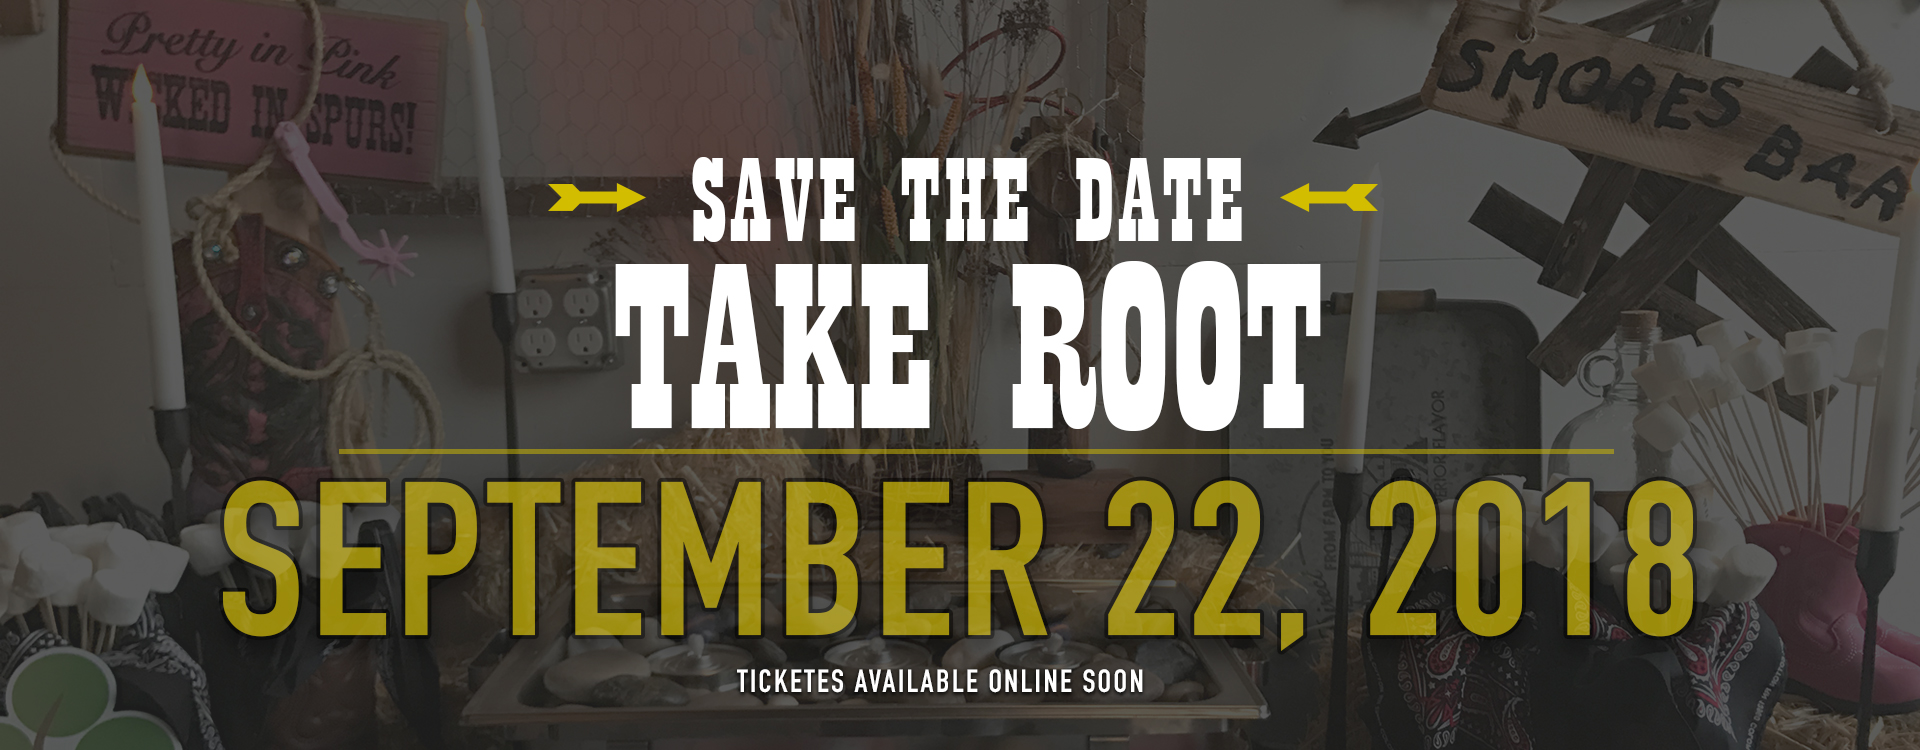 Save the date for Take Root 2018 - 9/22/18